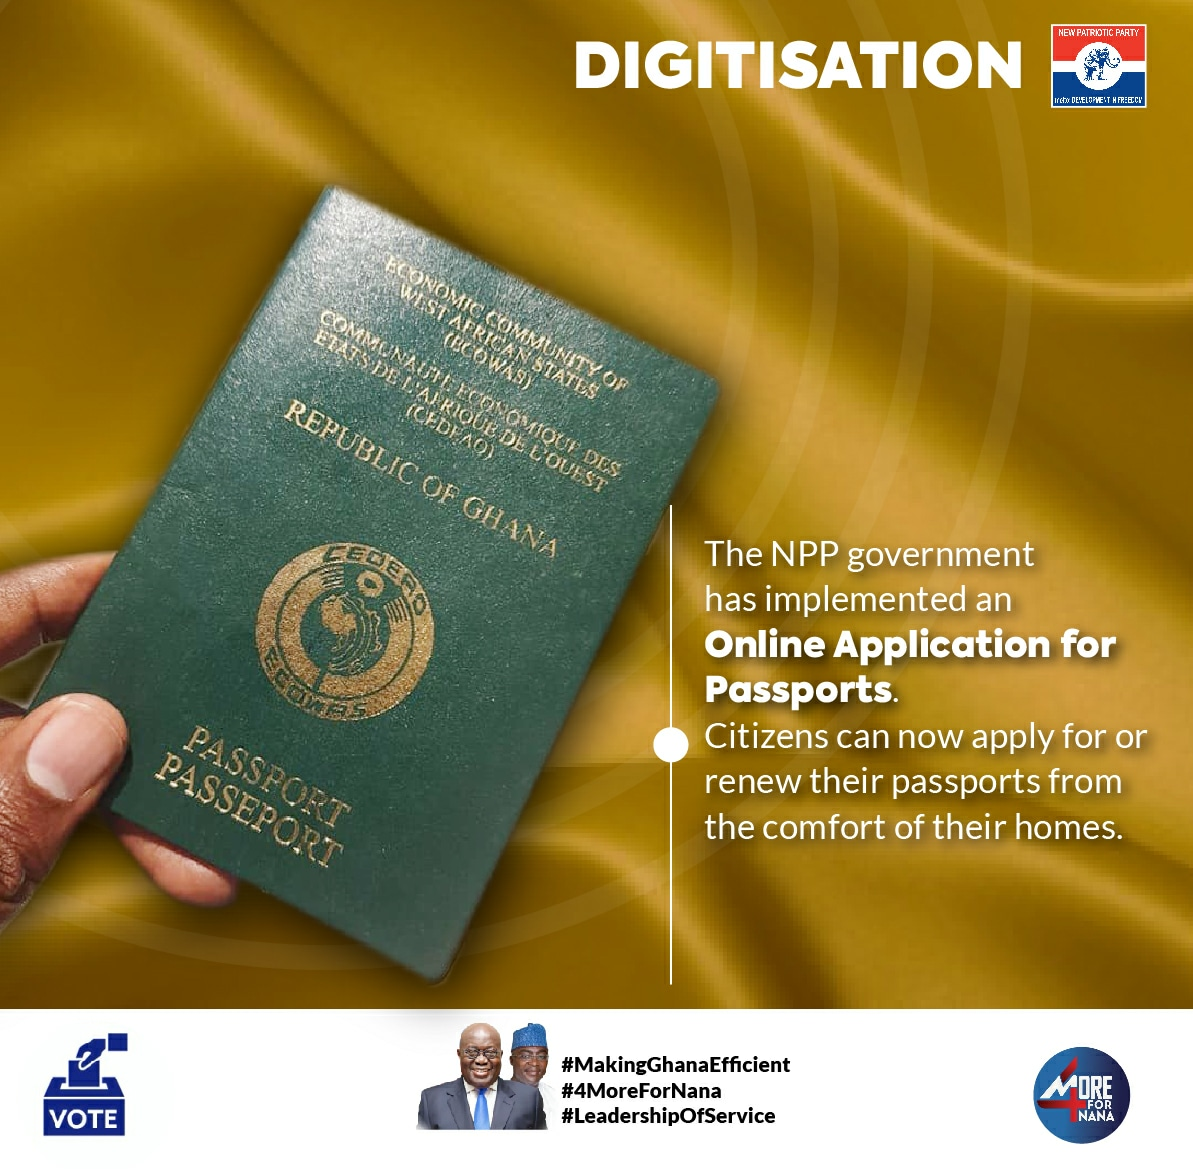 The online passport application, implemented by the NPP Government, has made it possible for Ghanaians to apply for or renew their passports from the comfort of their homes. #MakingGhanaEfficient #4MoreForNana https://t.co/0JSwTIeOIt